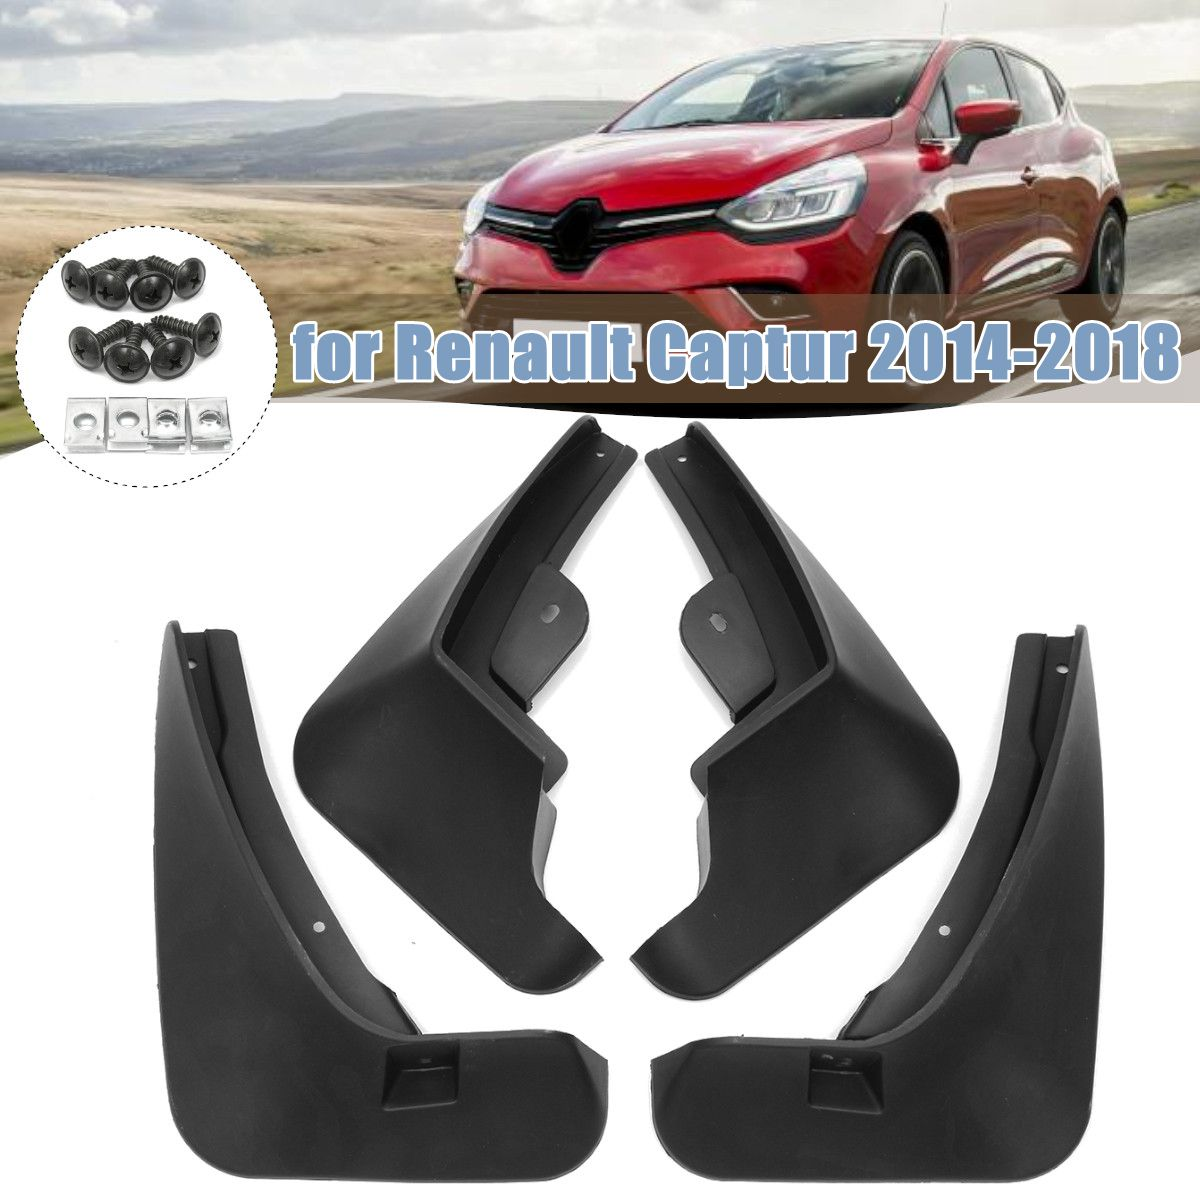 For Renault Captur Accessories 2013 2018 Splash Guards Mud Flaps Fender Mudguard